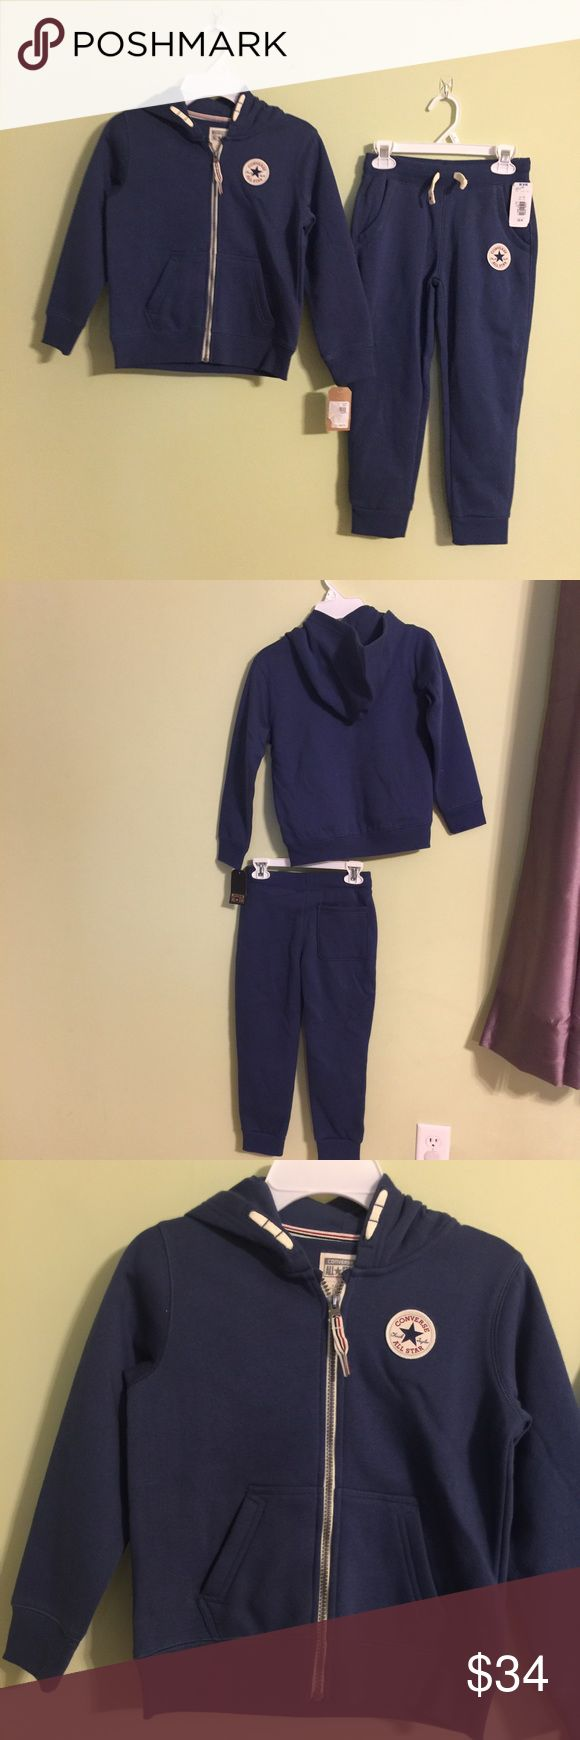 Converse Zip Hoodie w/matching sweatpants NWT Converse Zip Hoodie w/matching sweatpants NWT. Brand New never worn! Comes from smoke free and pet free house. Great Find! Set originally sold for $82. I'll consider reasonable offers and you can bundle and save on shipping. Converse Matching Sets